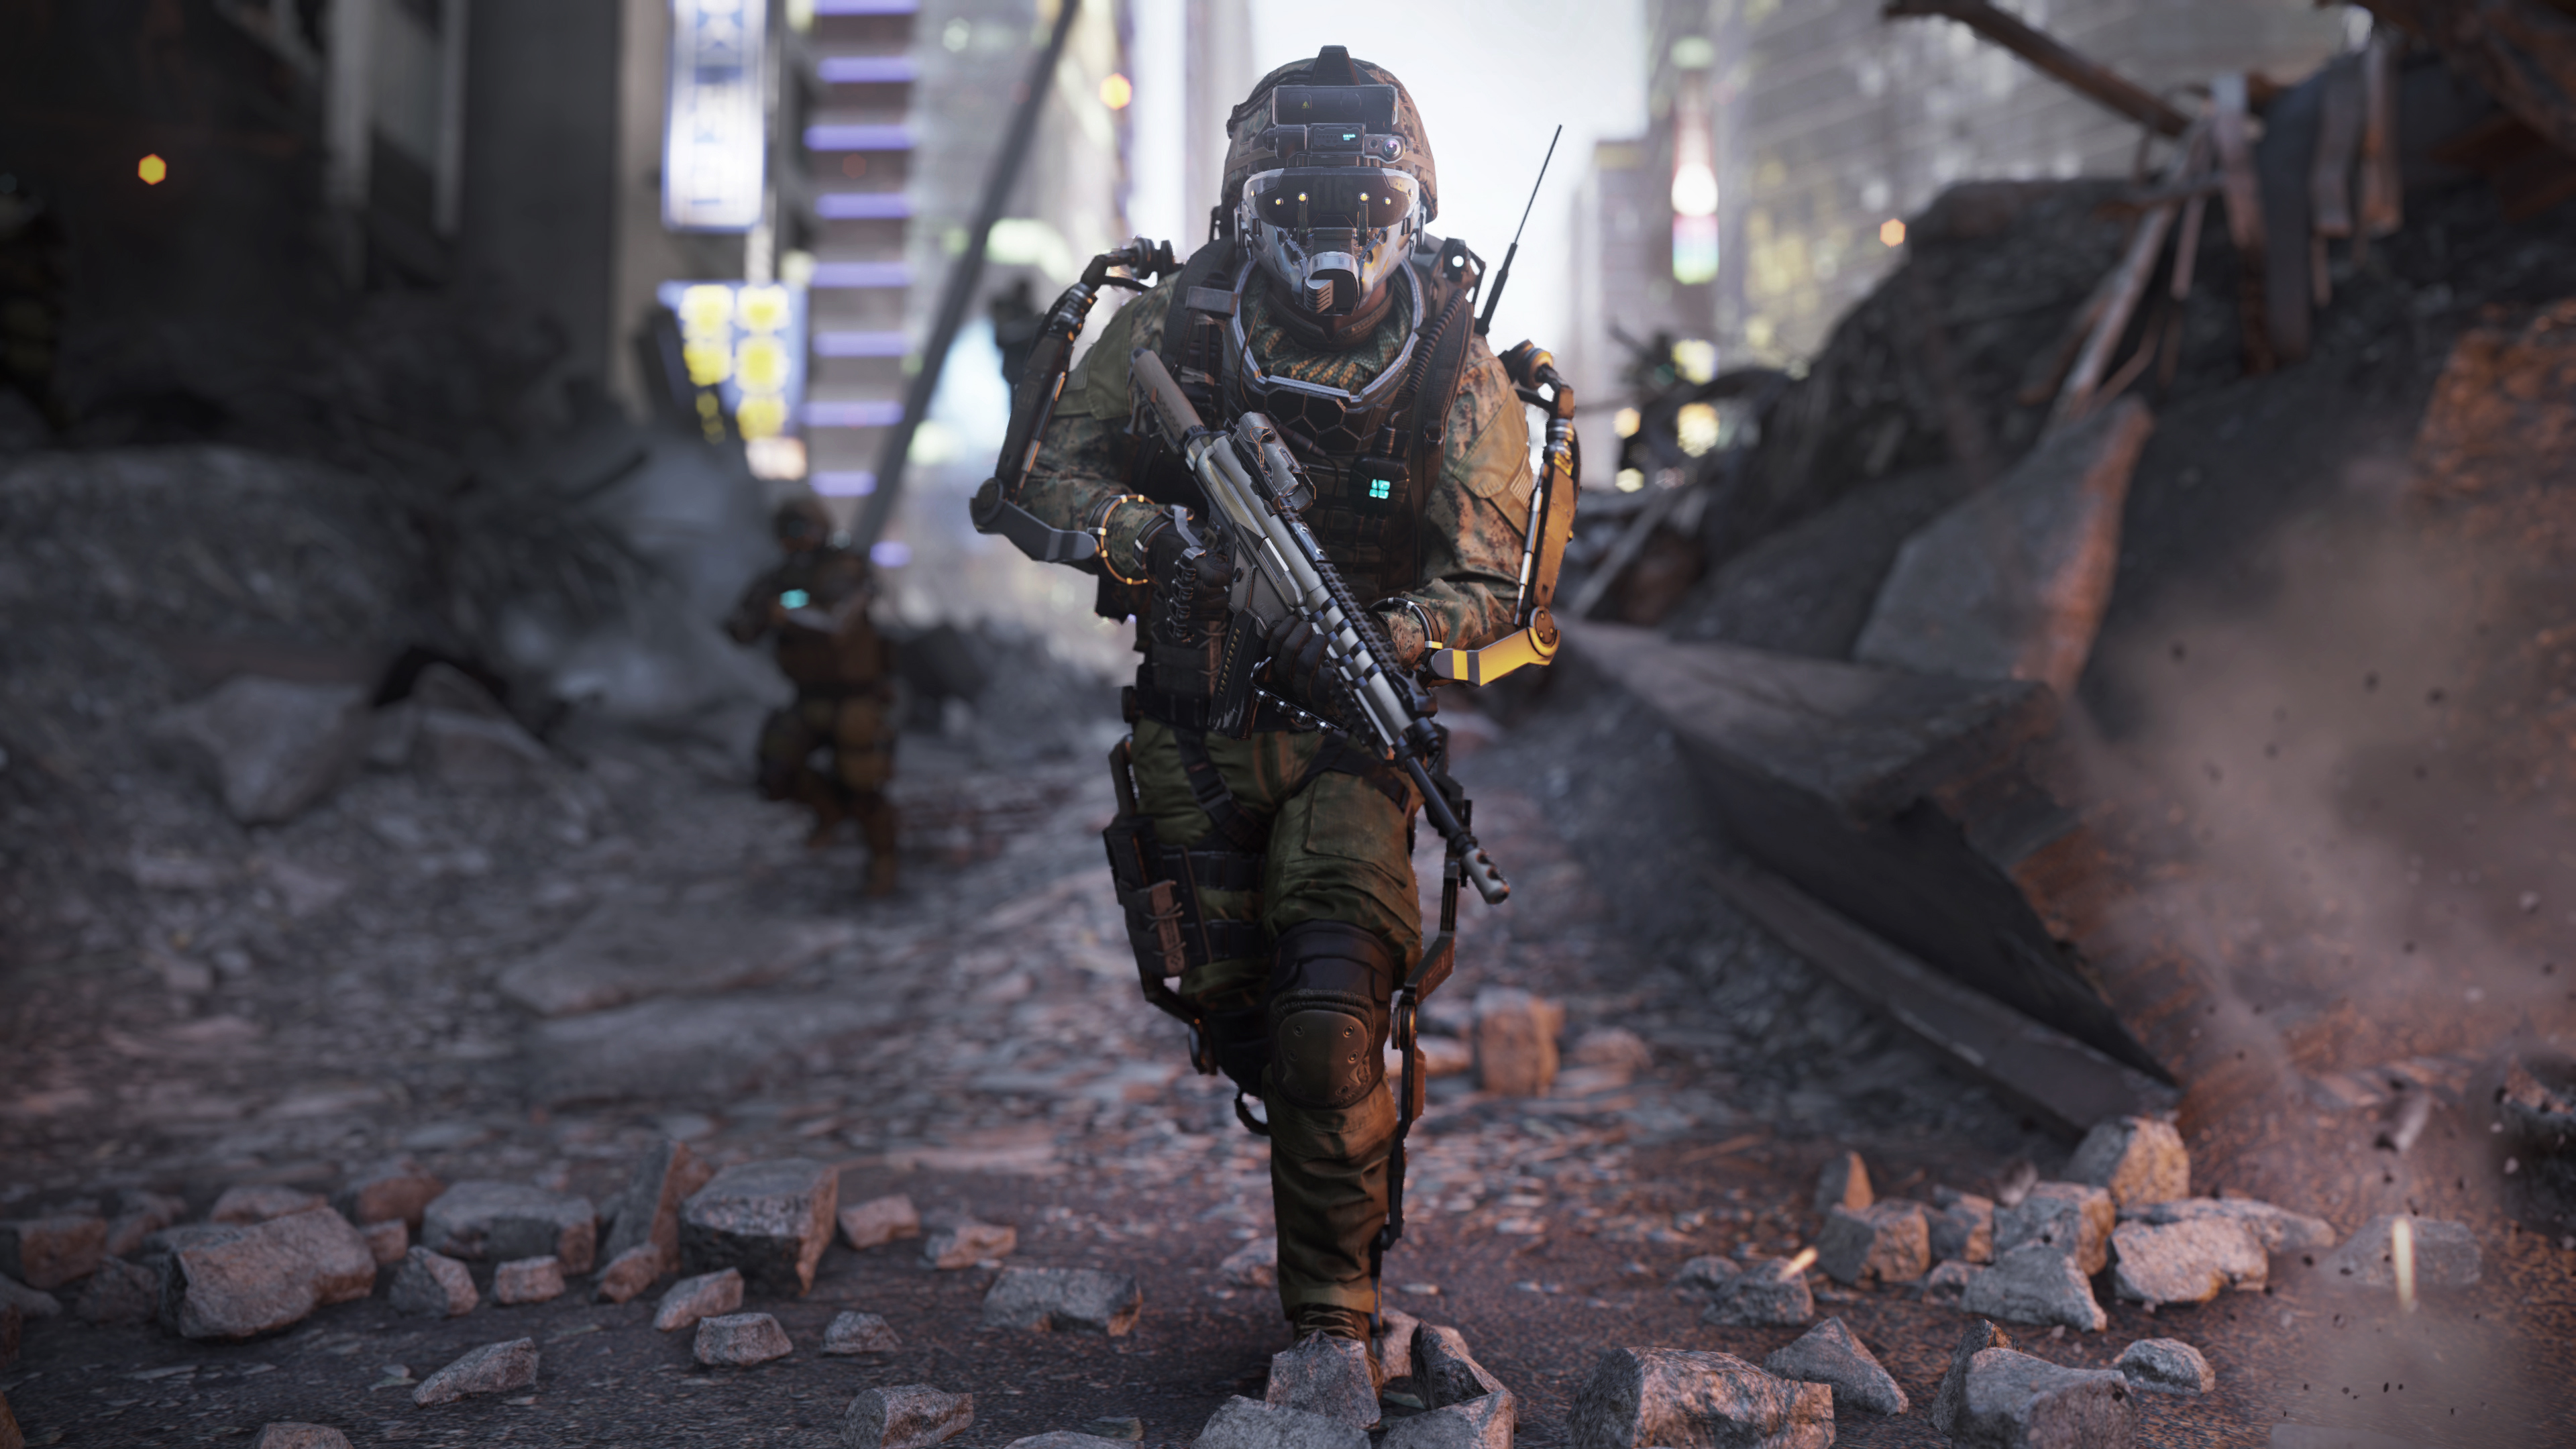 Amazon.com: all call of duty games for ps4